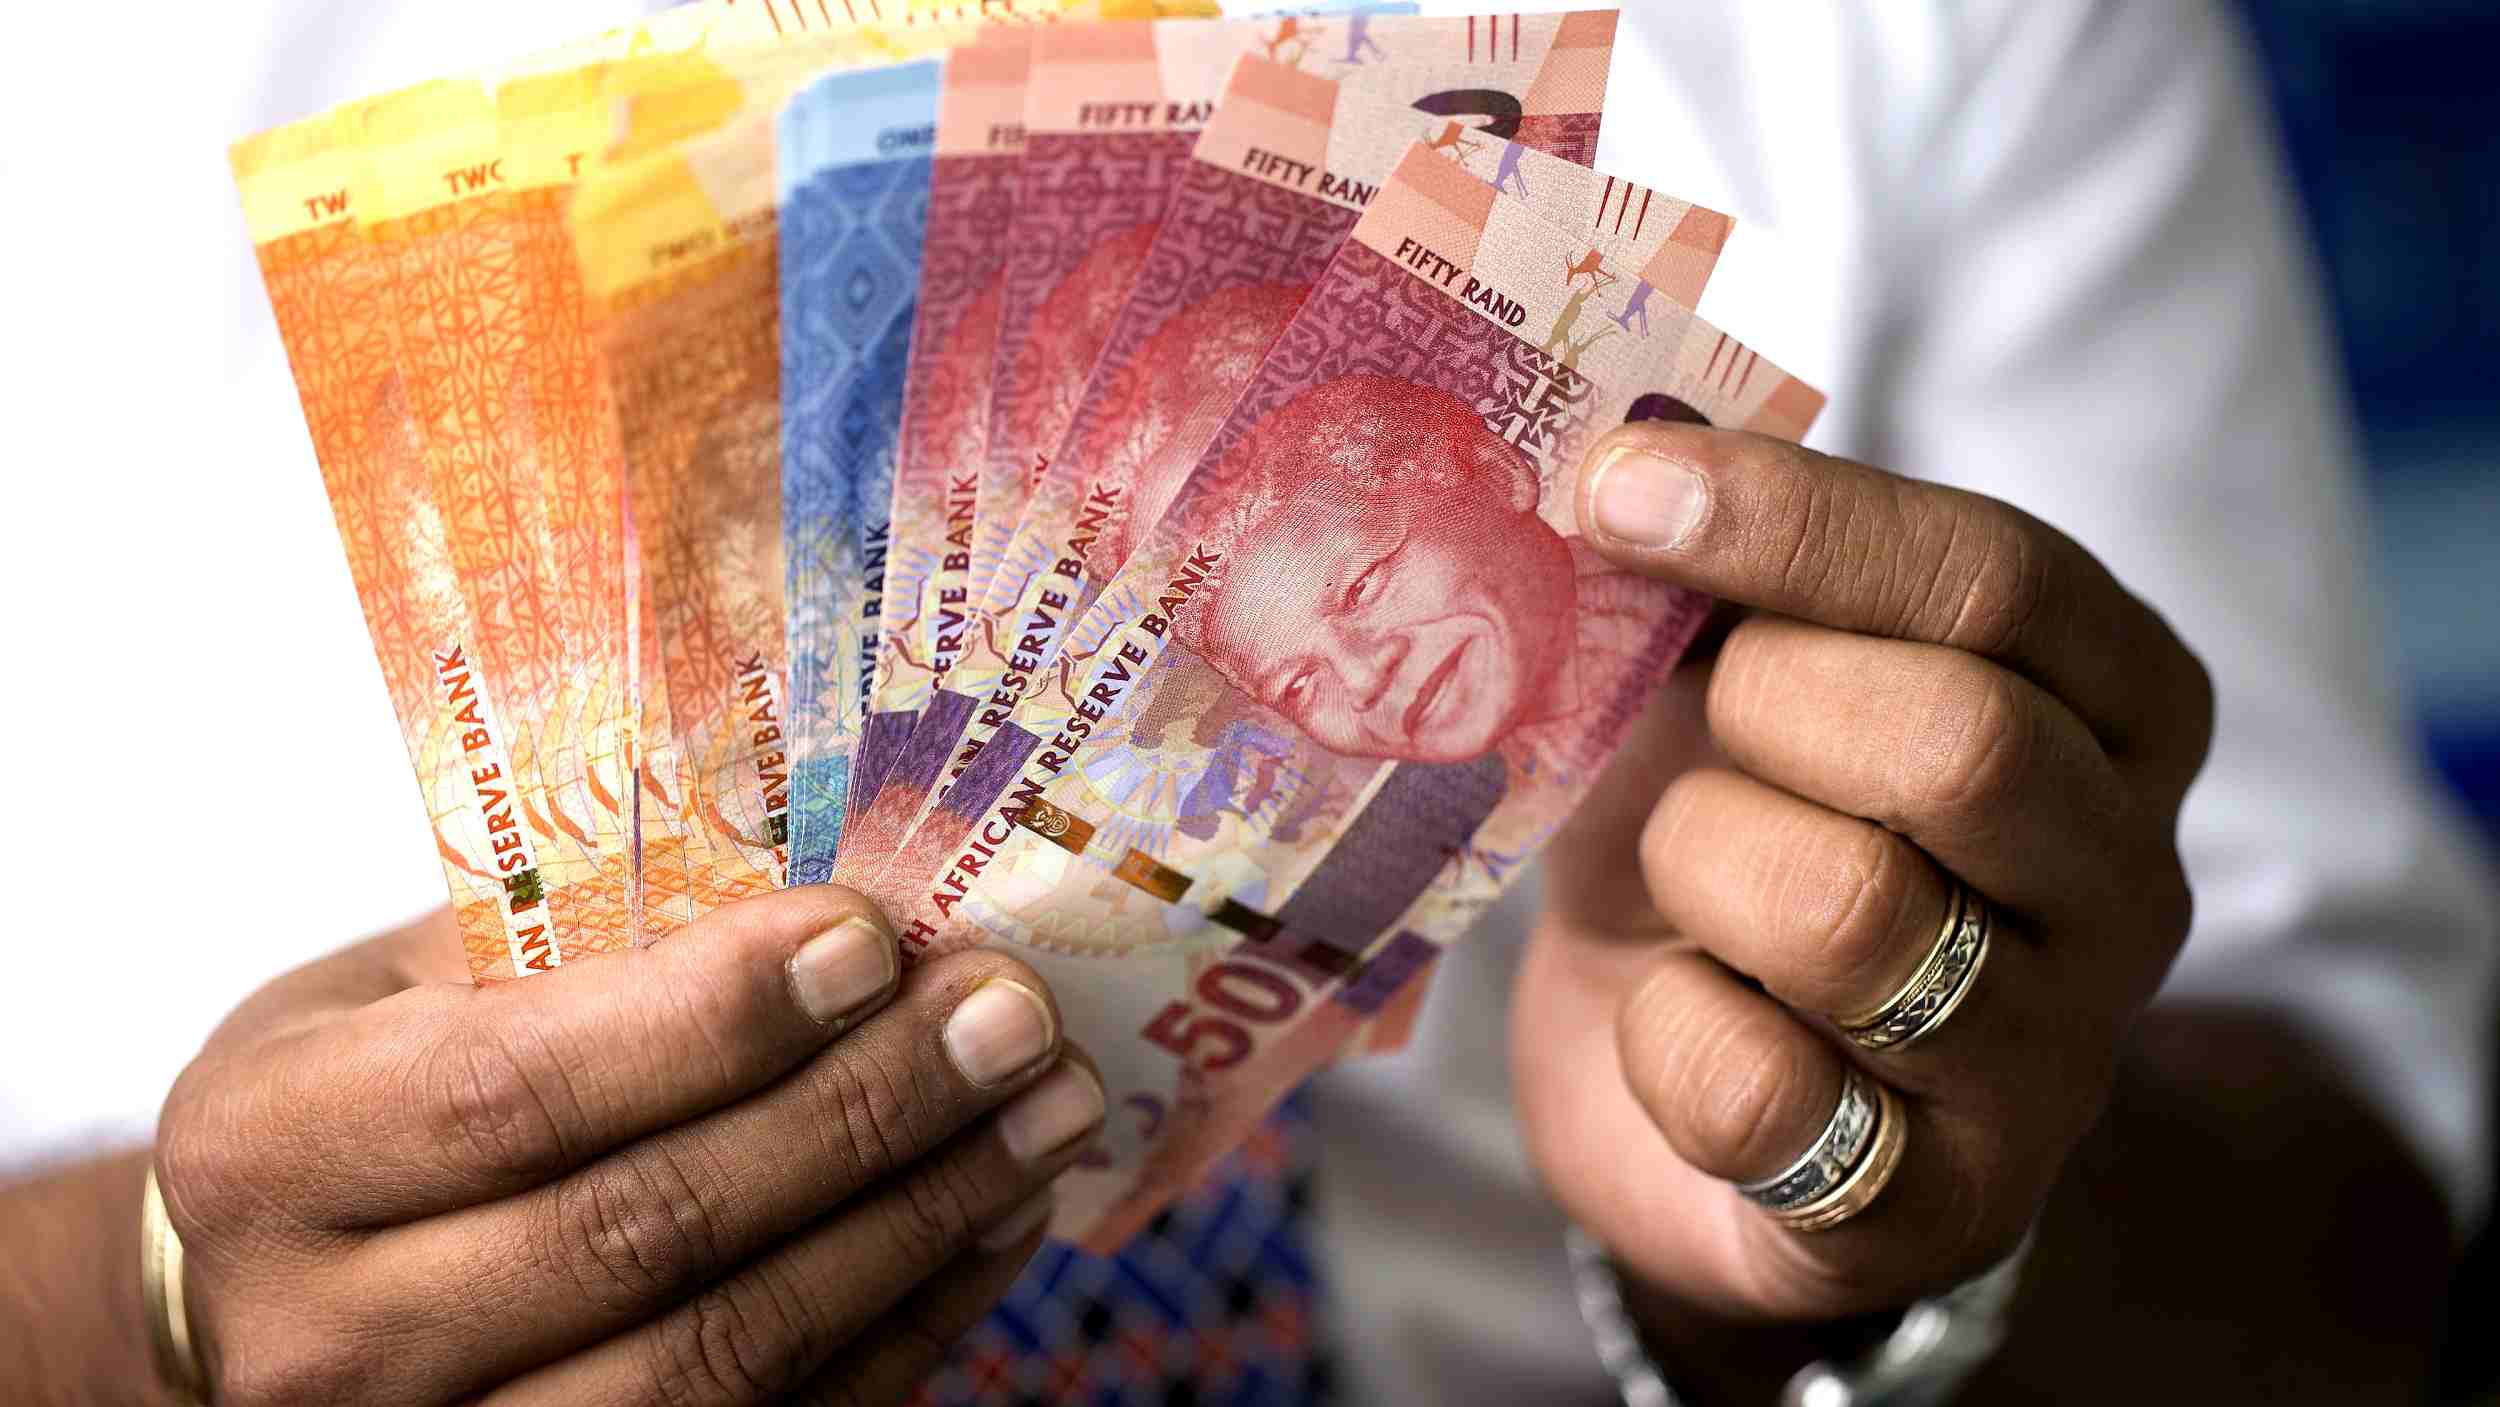 south african currency - HD2500×1407